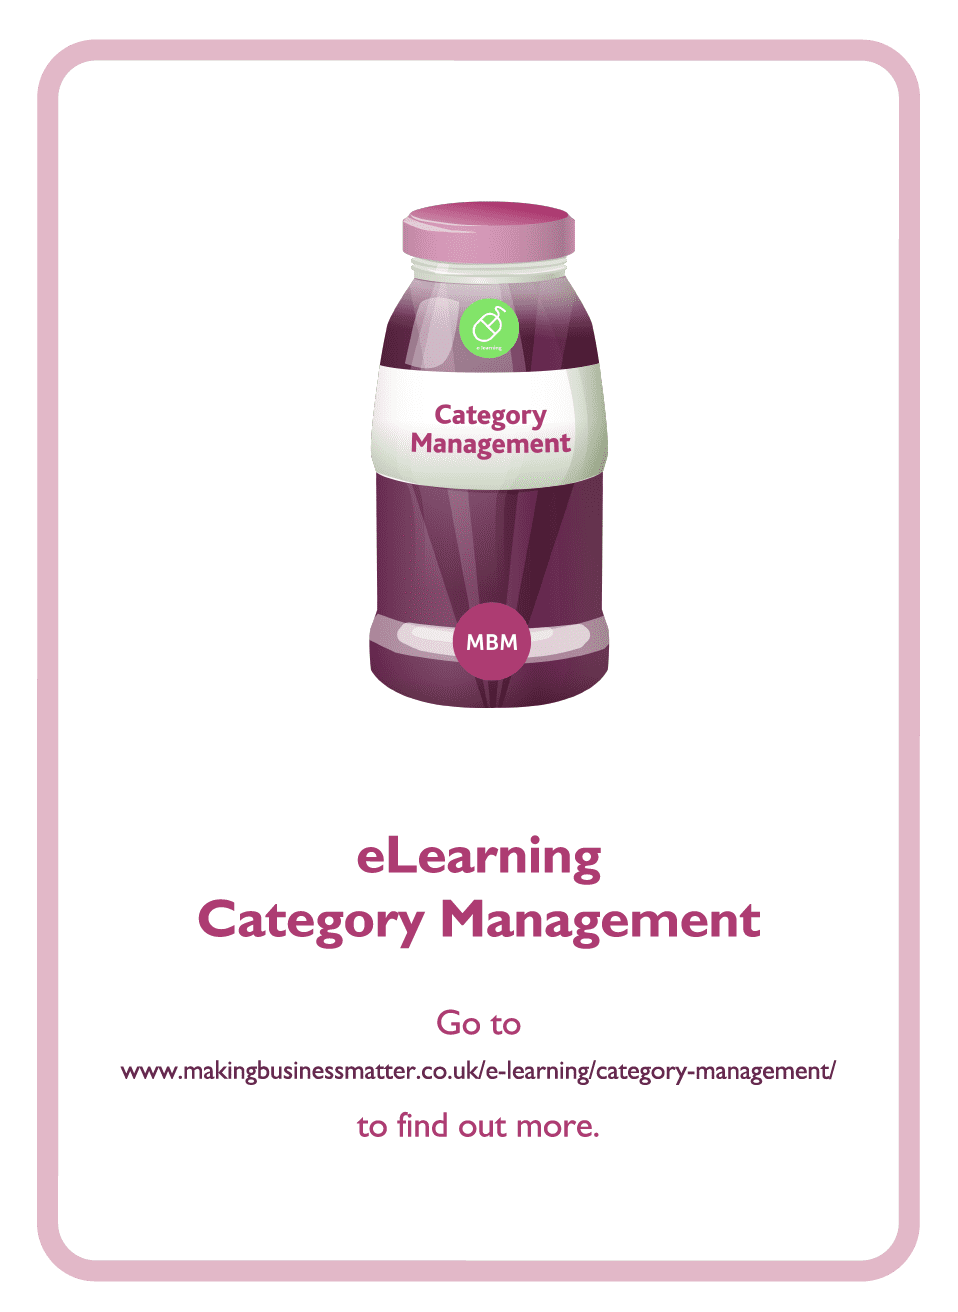 Negotiation coaching card titled eLearning